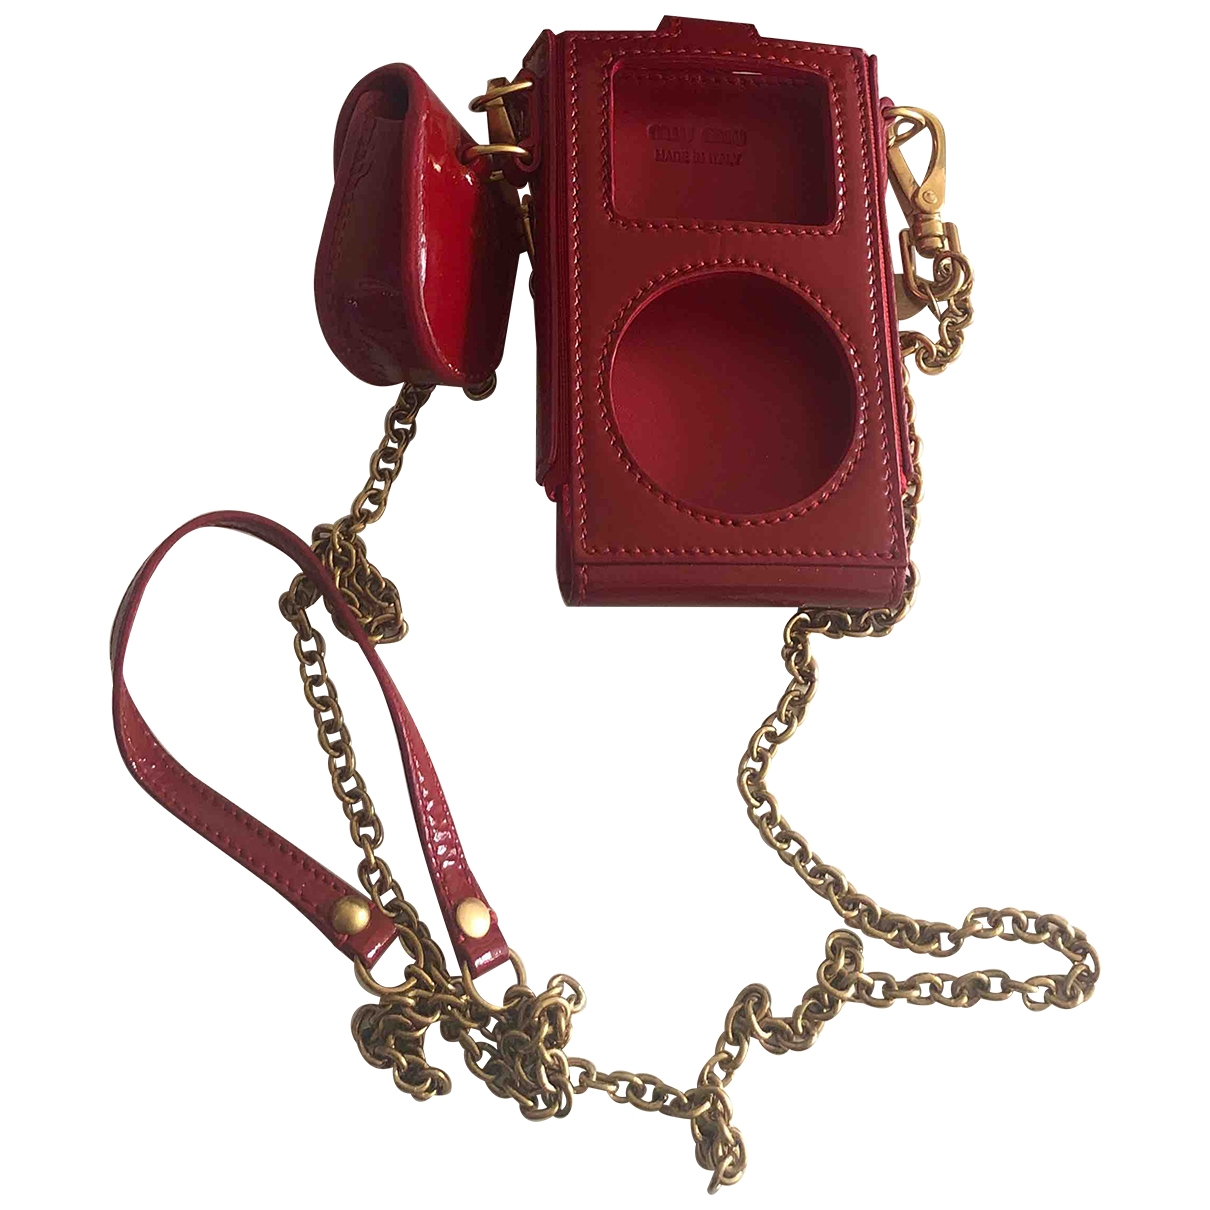 Miu Miu \N Red Patent leather Accessories for Life & Living \N